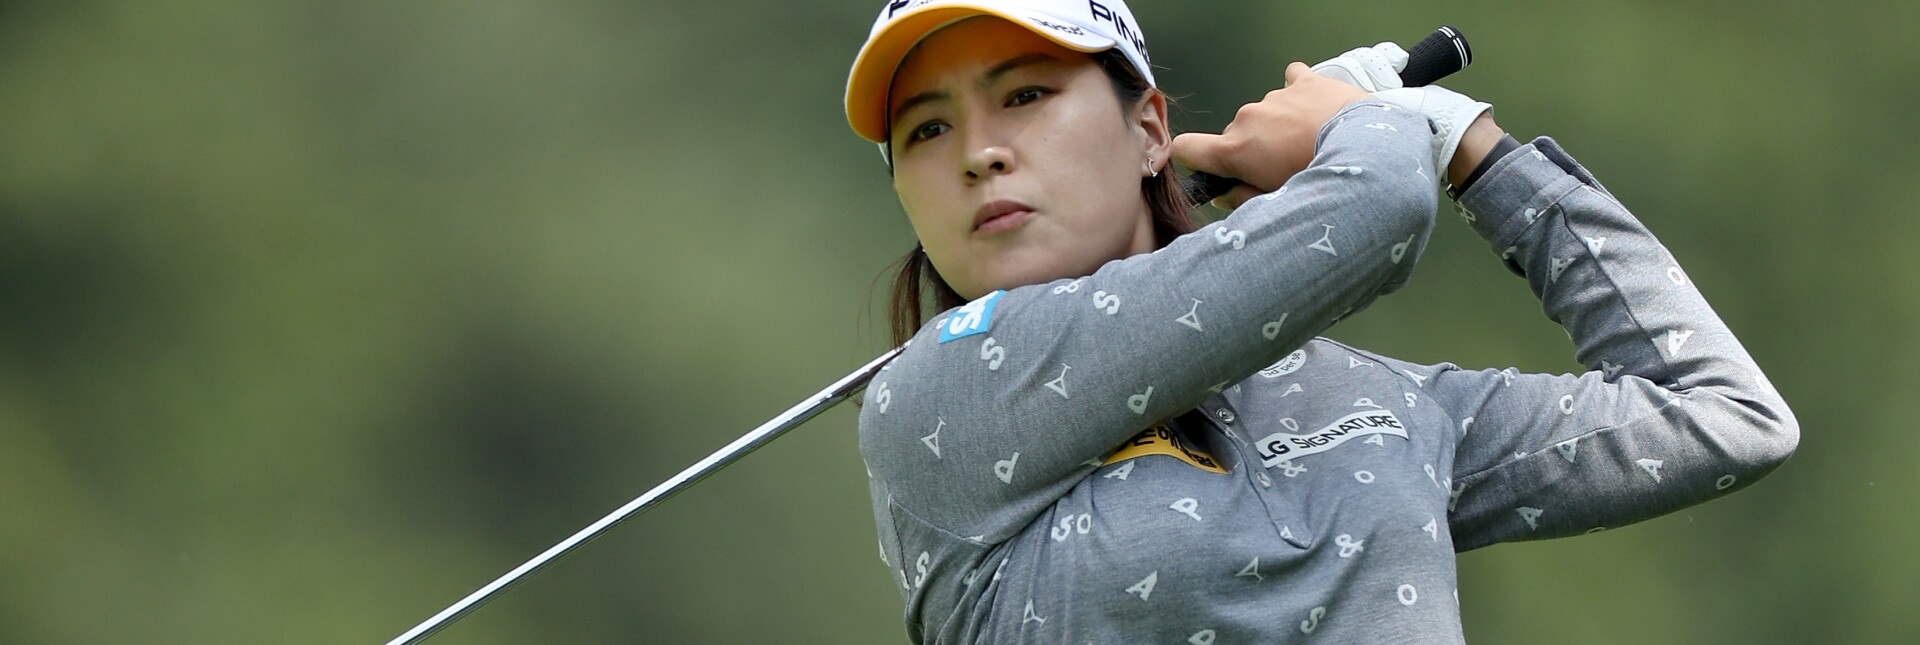 AIG Women's British Open - Day Two